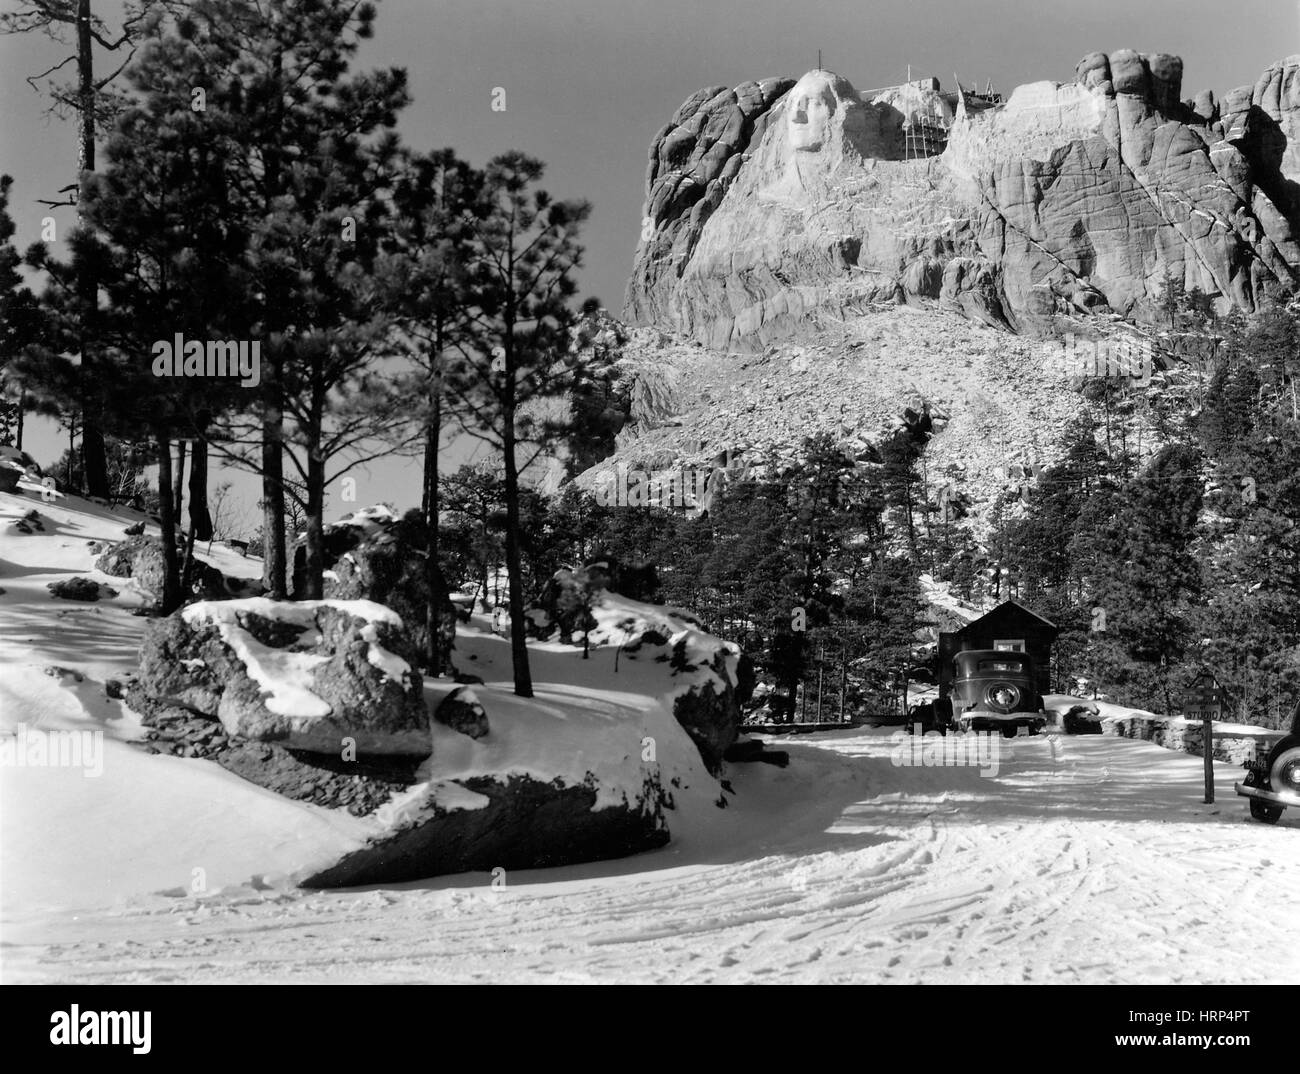 Carving Mount Rushmore, 1930s - Stock Image